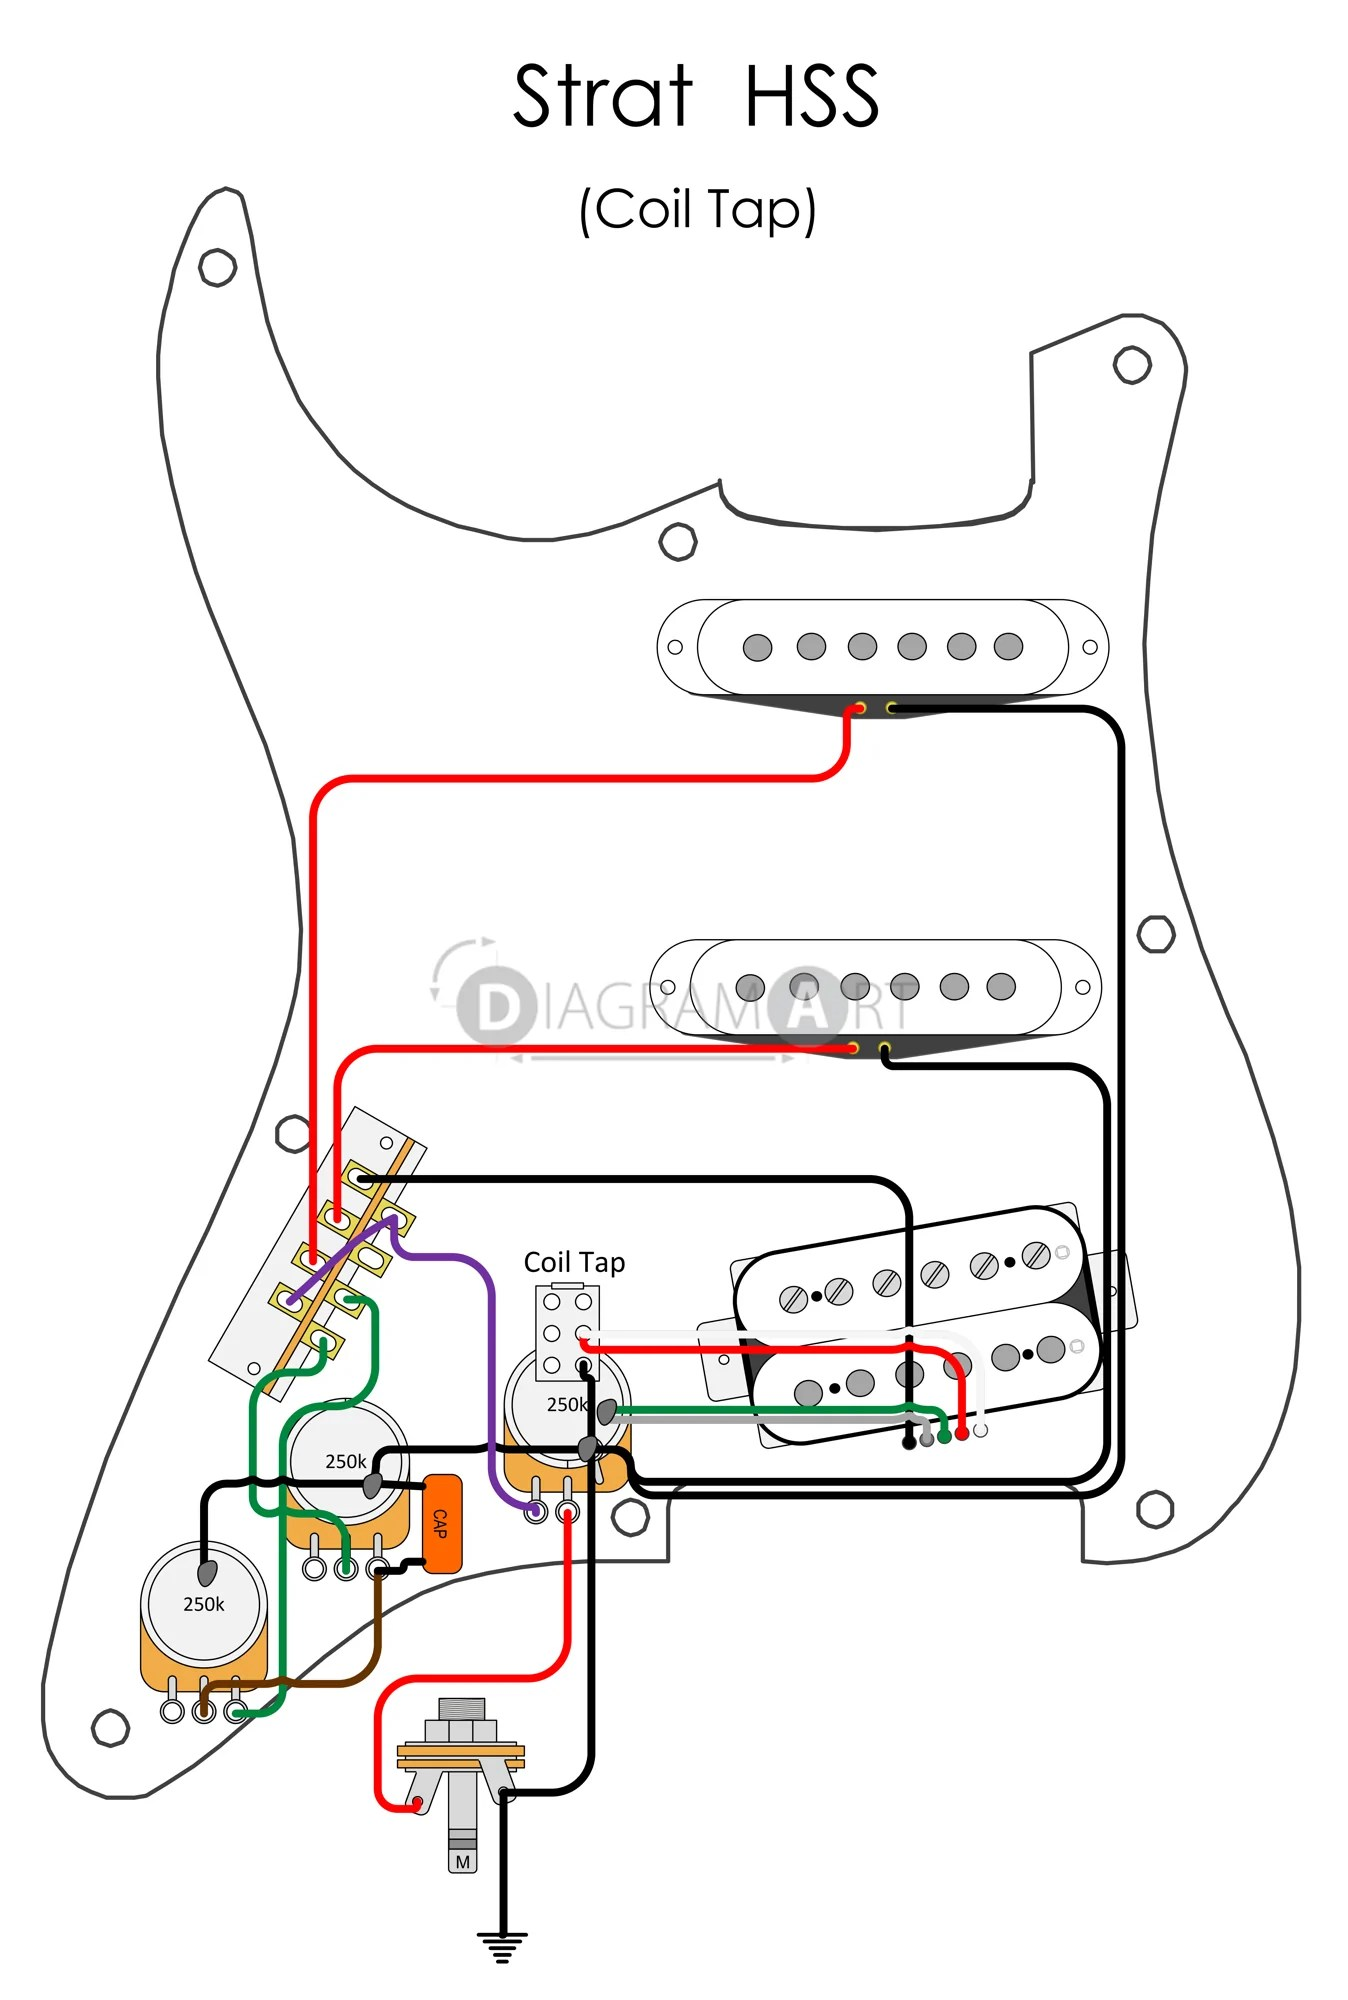 medium resolution of hss with coil split wiring diagram wiring diagram schematics split coil pickup coil split hss wiring diagram